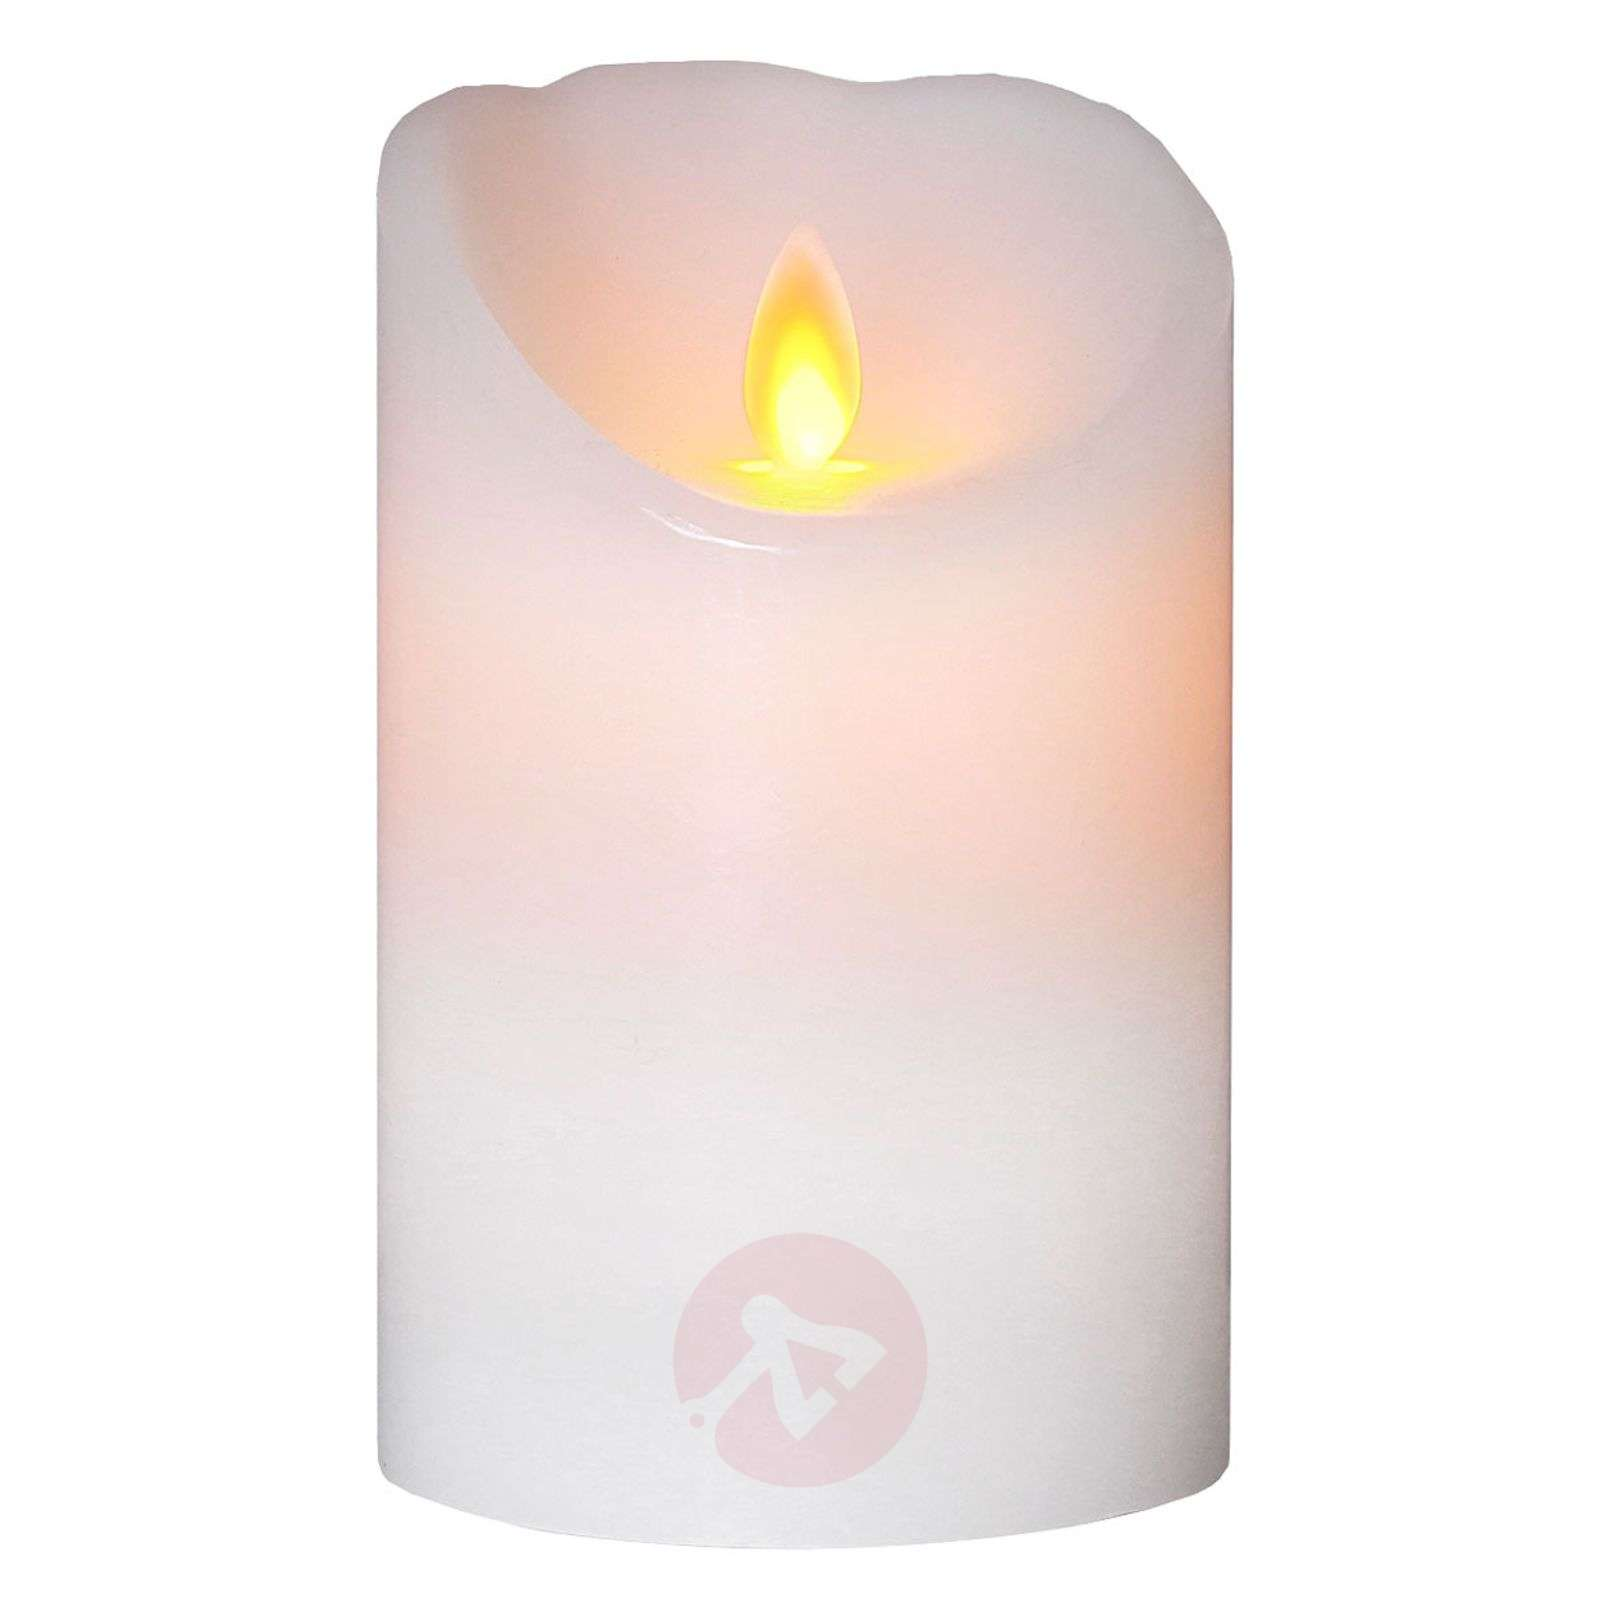 White LED candle Glim w. flickering light-1522804-01